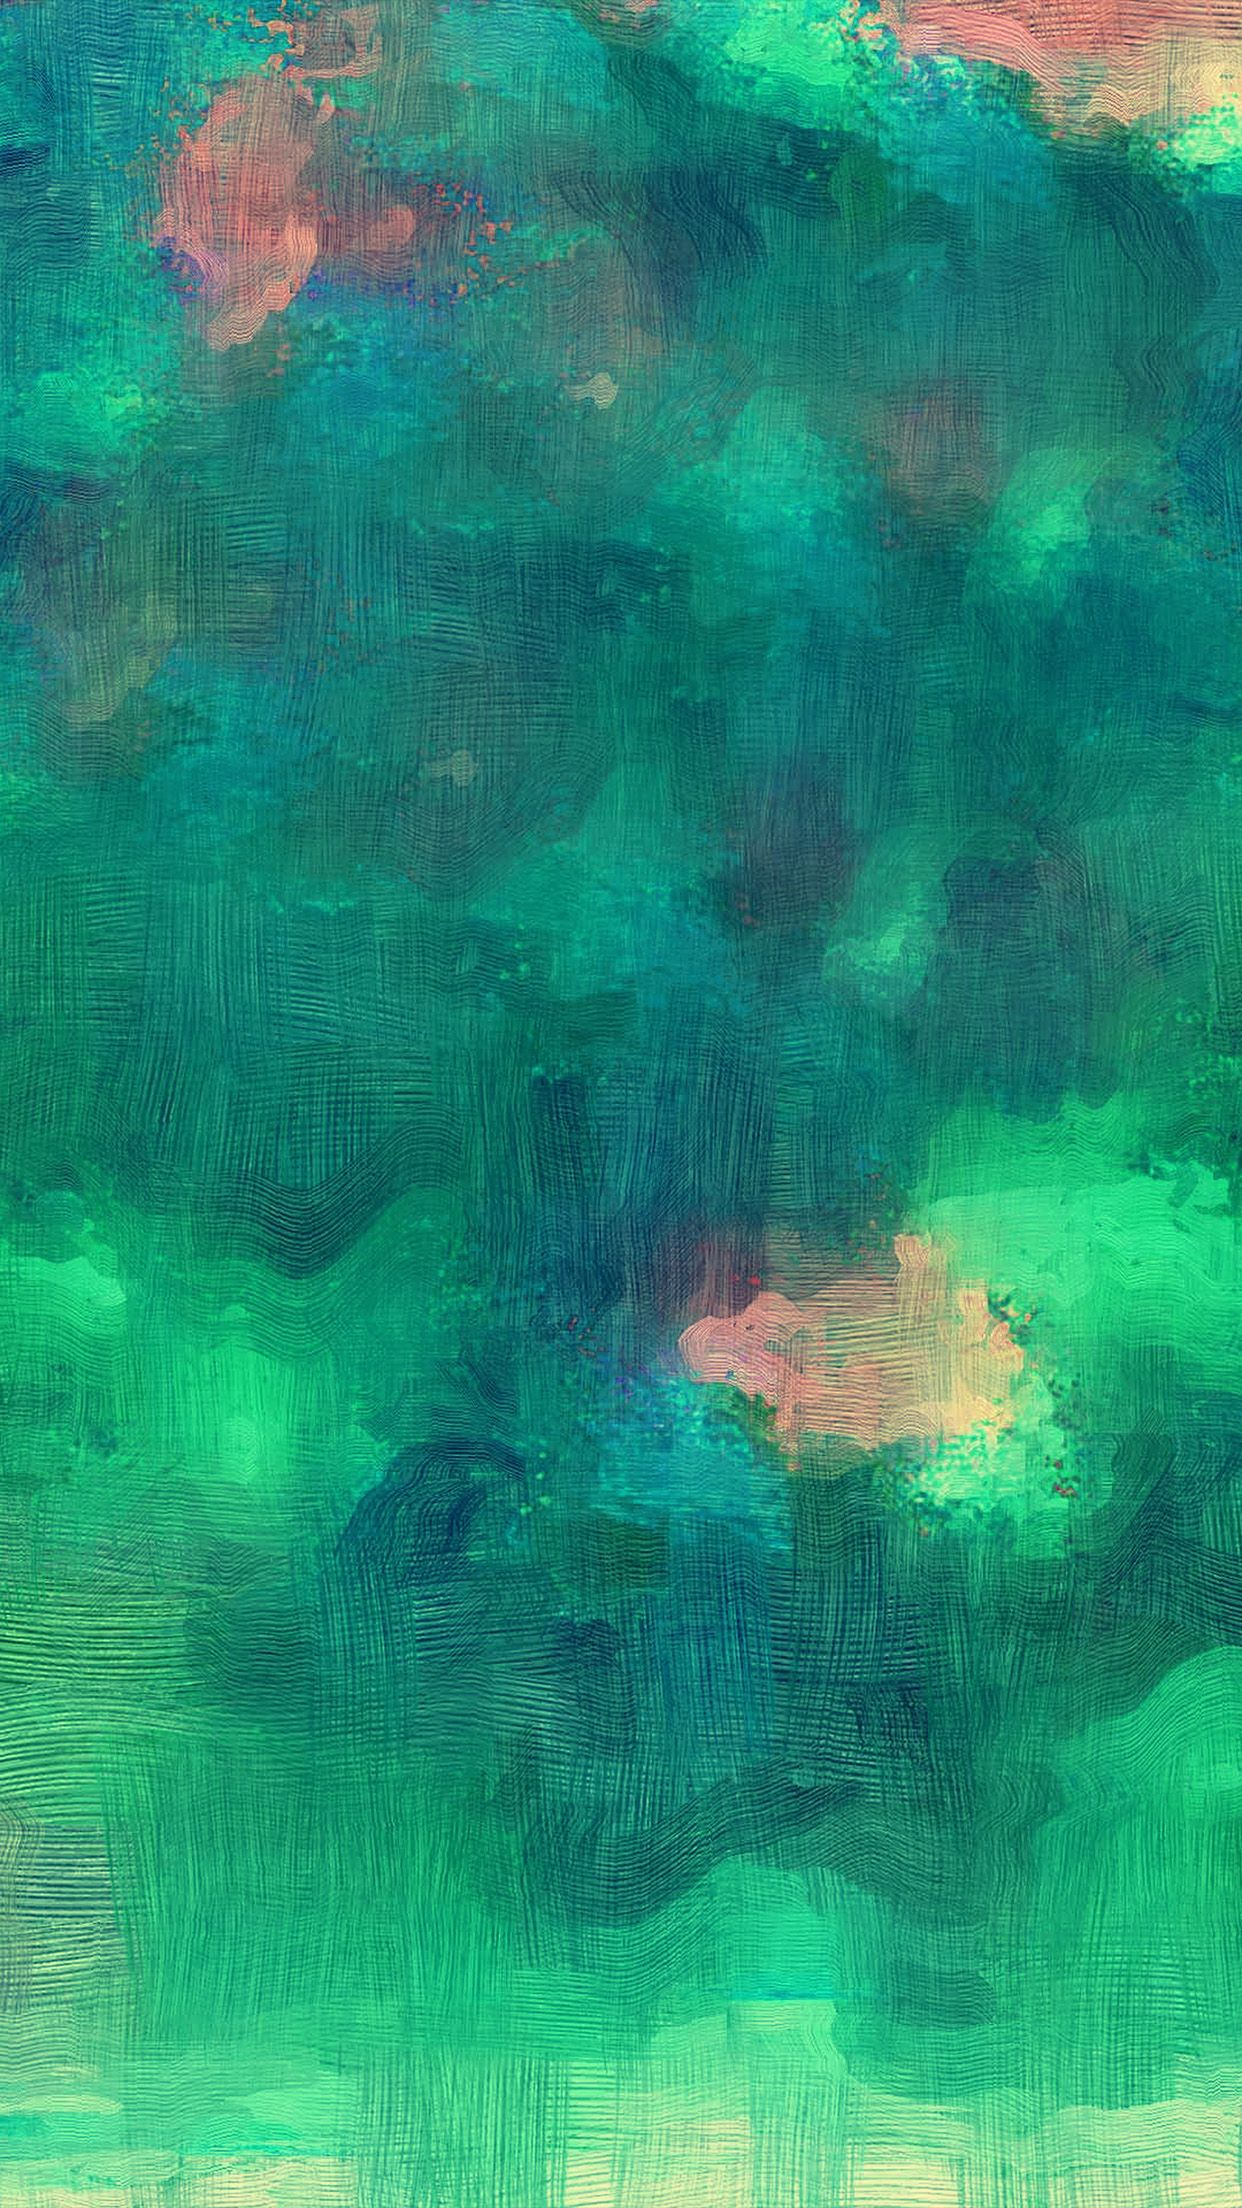 1242x2208 iPhone6papers.com | iPhone 6 wallpaper | vl23-samsung-galaxy-green ...